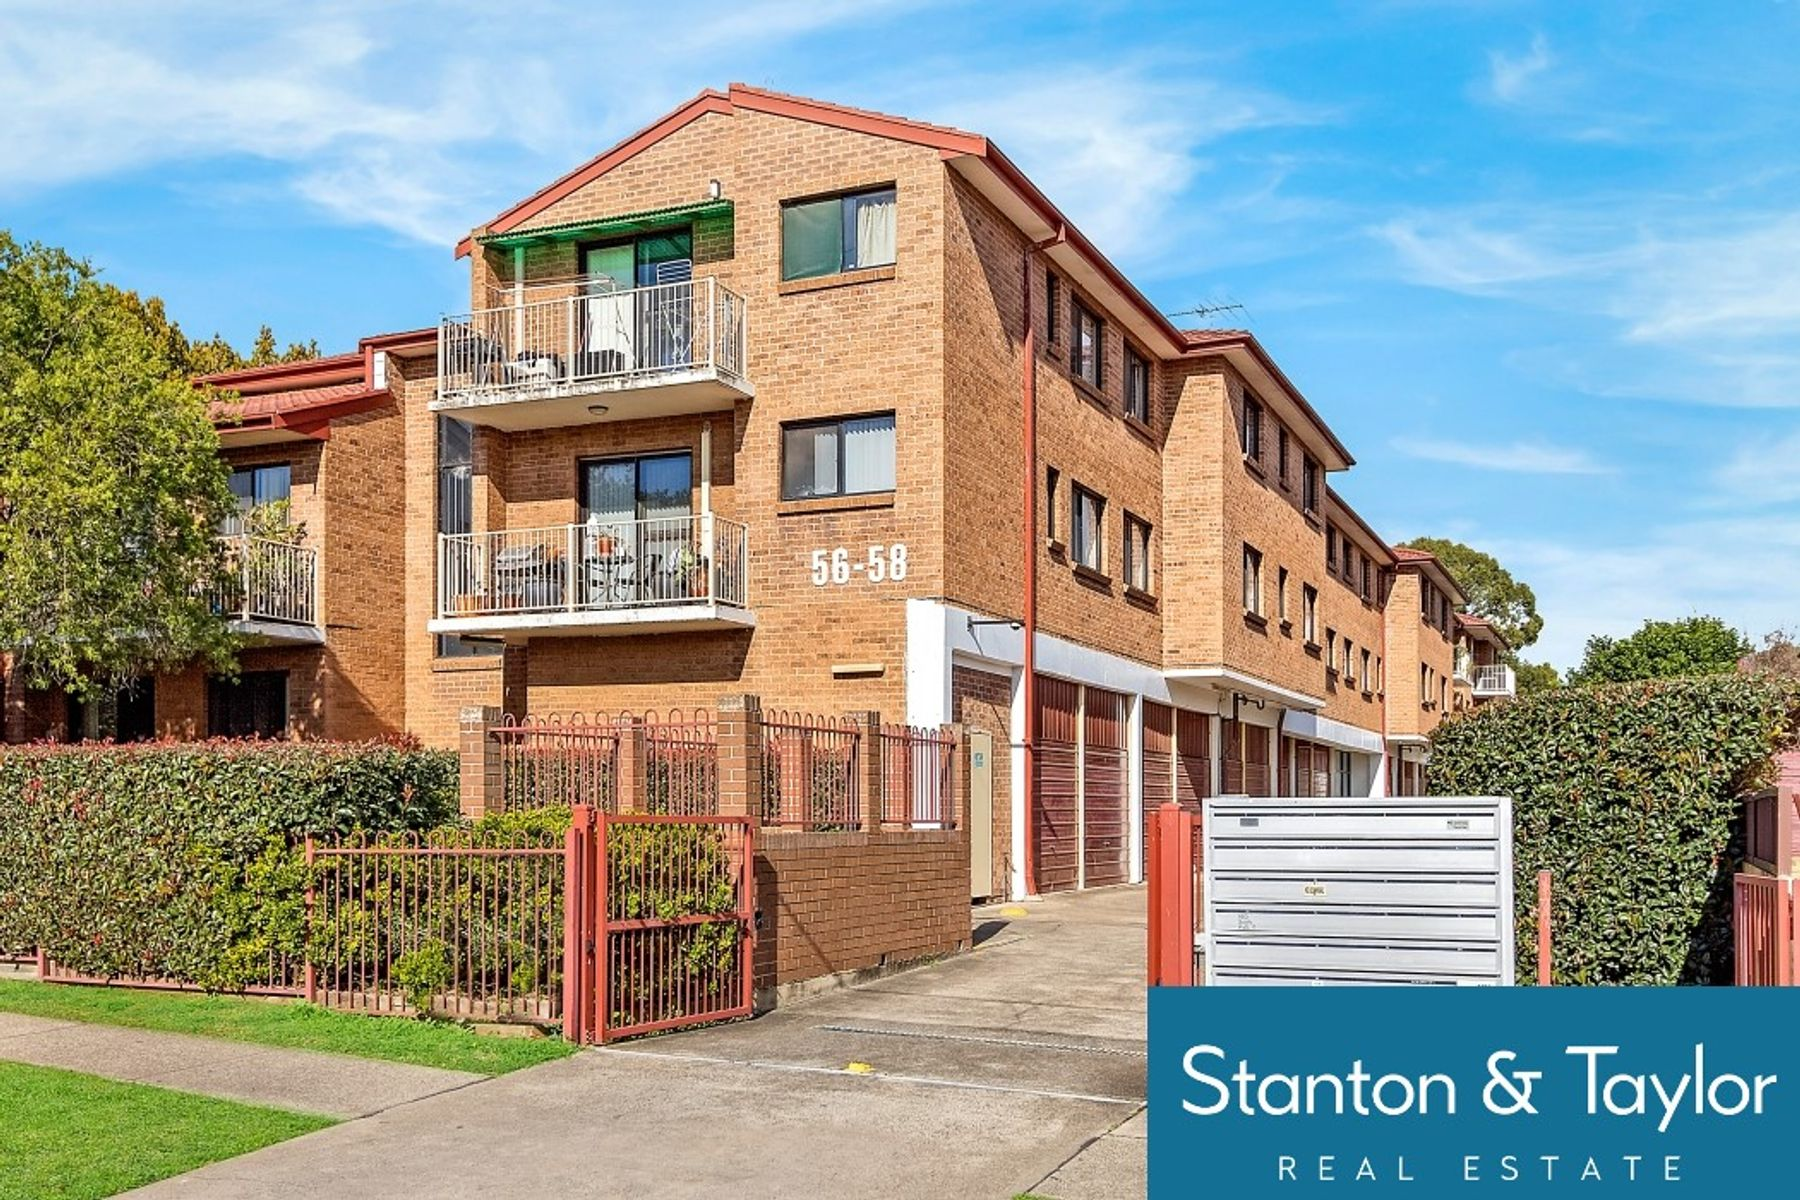 7/56-58 Victoria Street, Werrington, NSW 2747